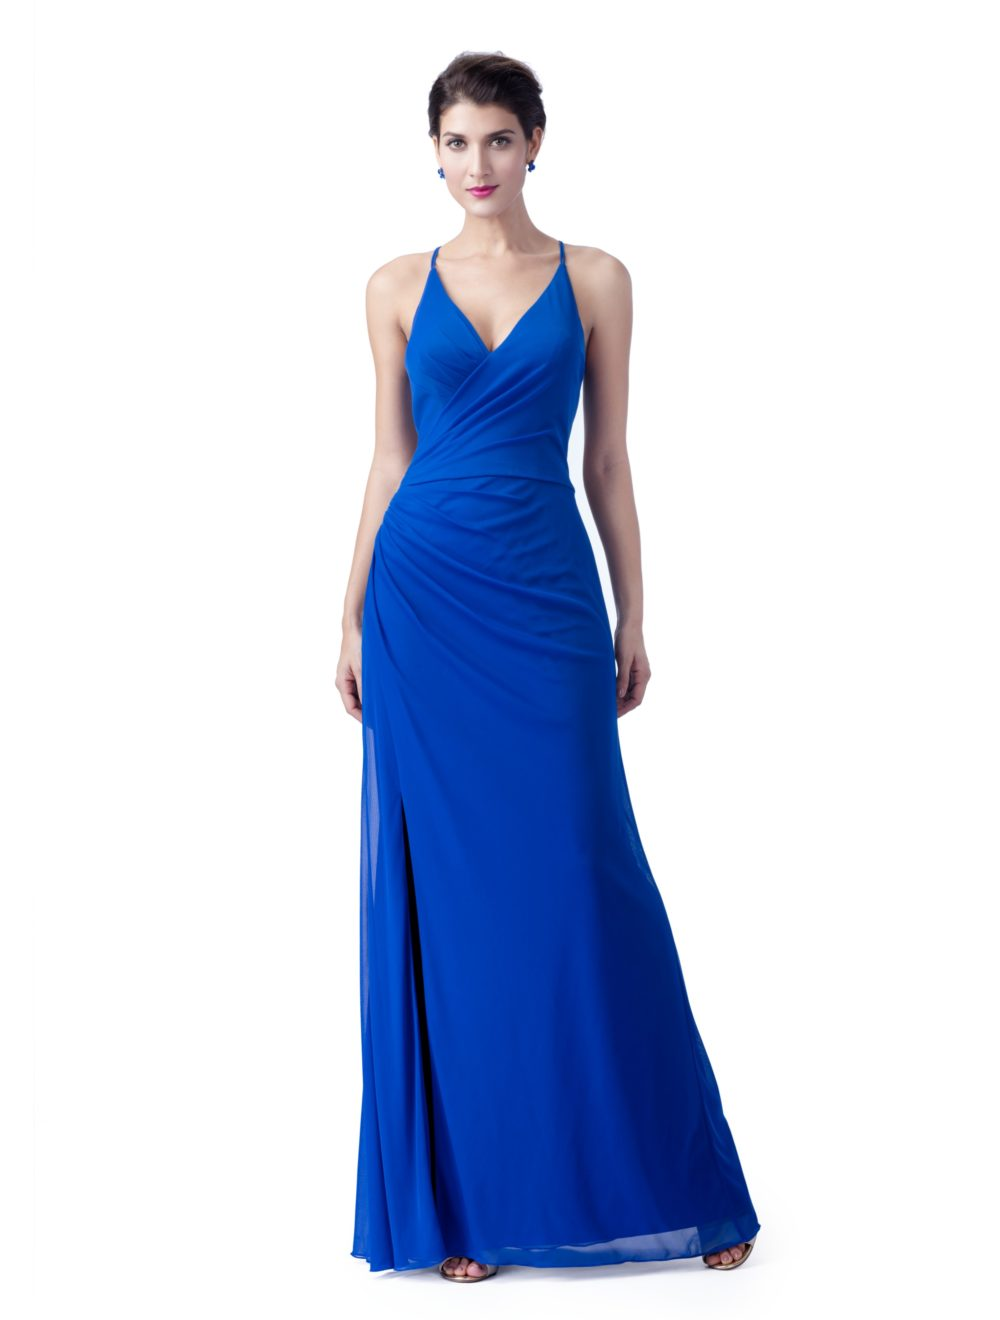 Summer Blue Chiffon Beach   Bridesmaid     Dresses   With Spaghetti Straps Long Floor Length Formal Wedding Party   Dress   Sexy Open Back